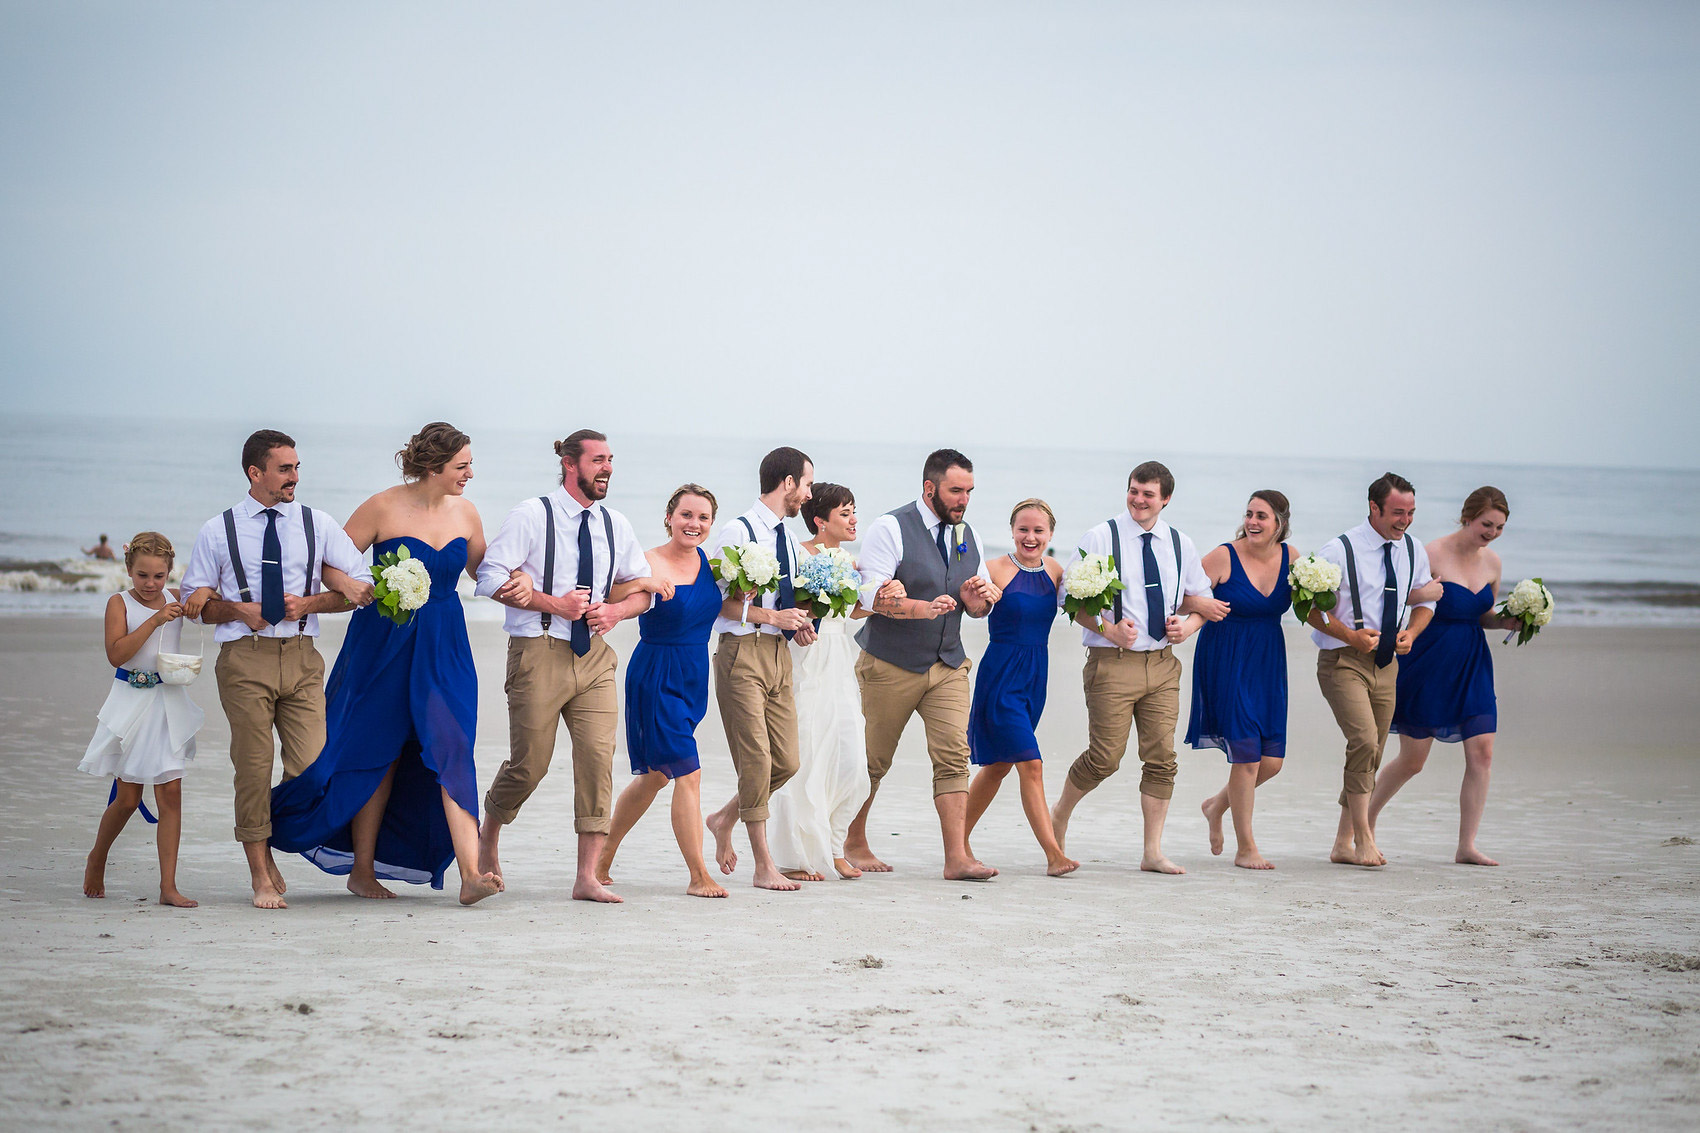 adam-szarmack-atlantic-beach-wedding-photographer-mayport-48.jpg